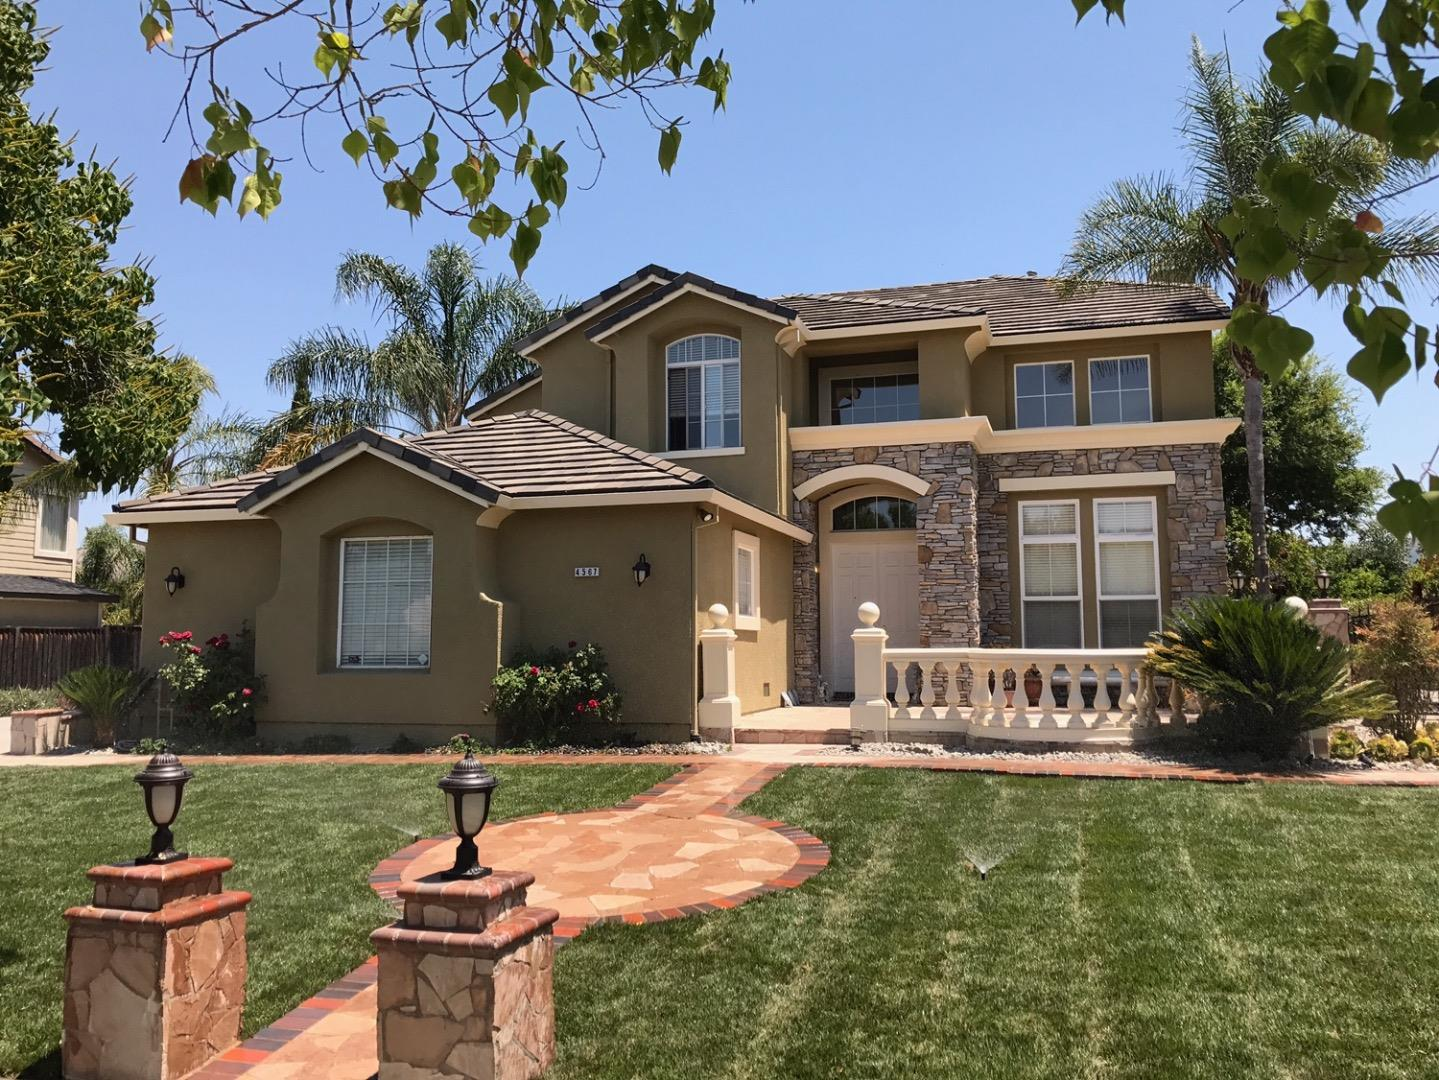 Single Family Home for Sale at 4567 Terra Place San Jose, California 95121 United States